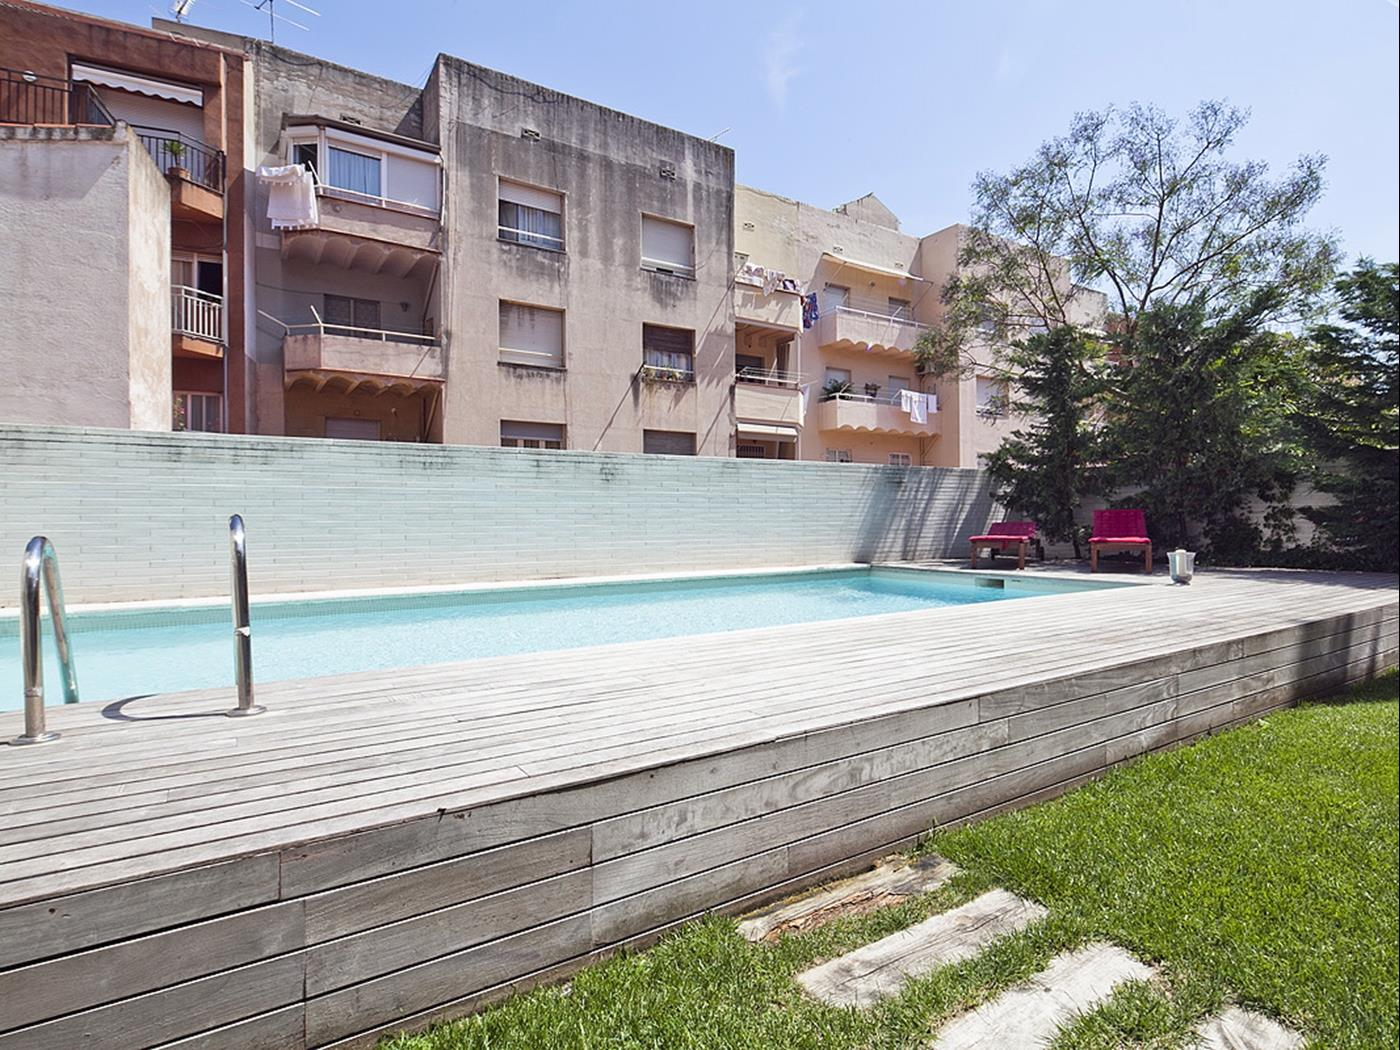 Attique avec Piscine et Terrasse Privée près du Centre - My Space Barcelona Appartements